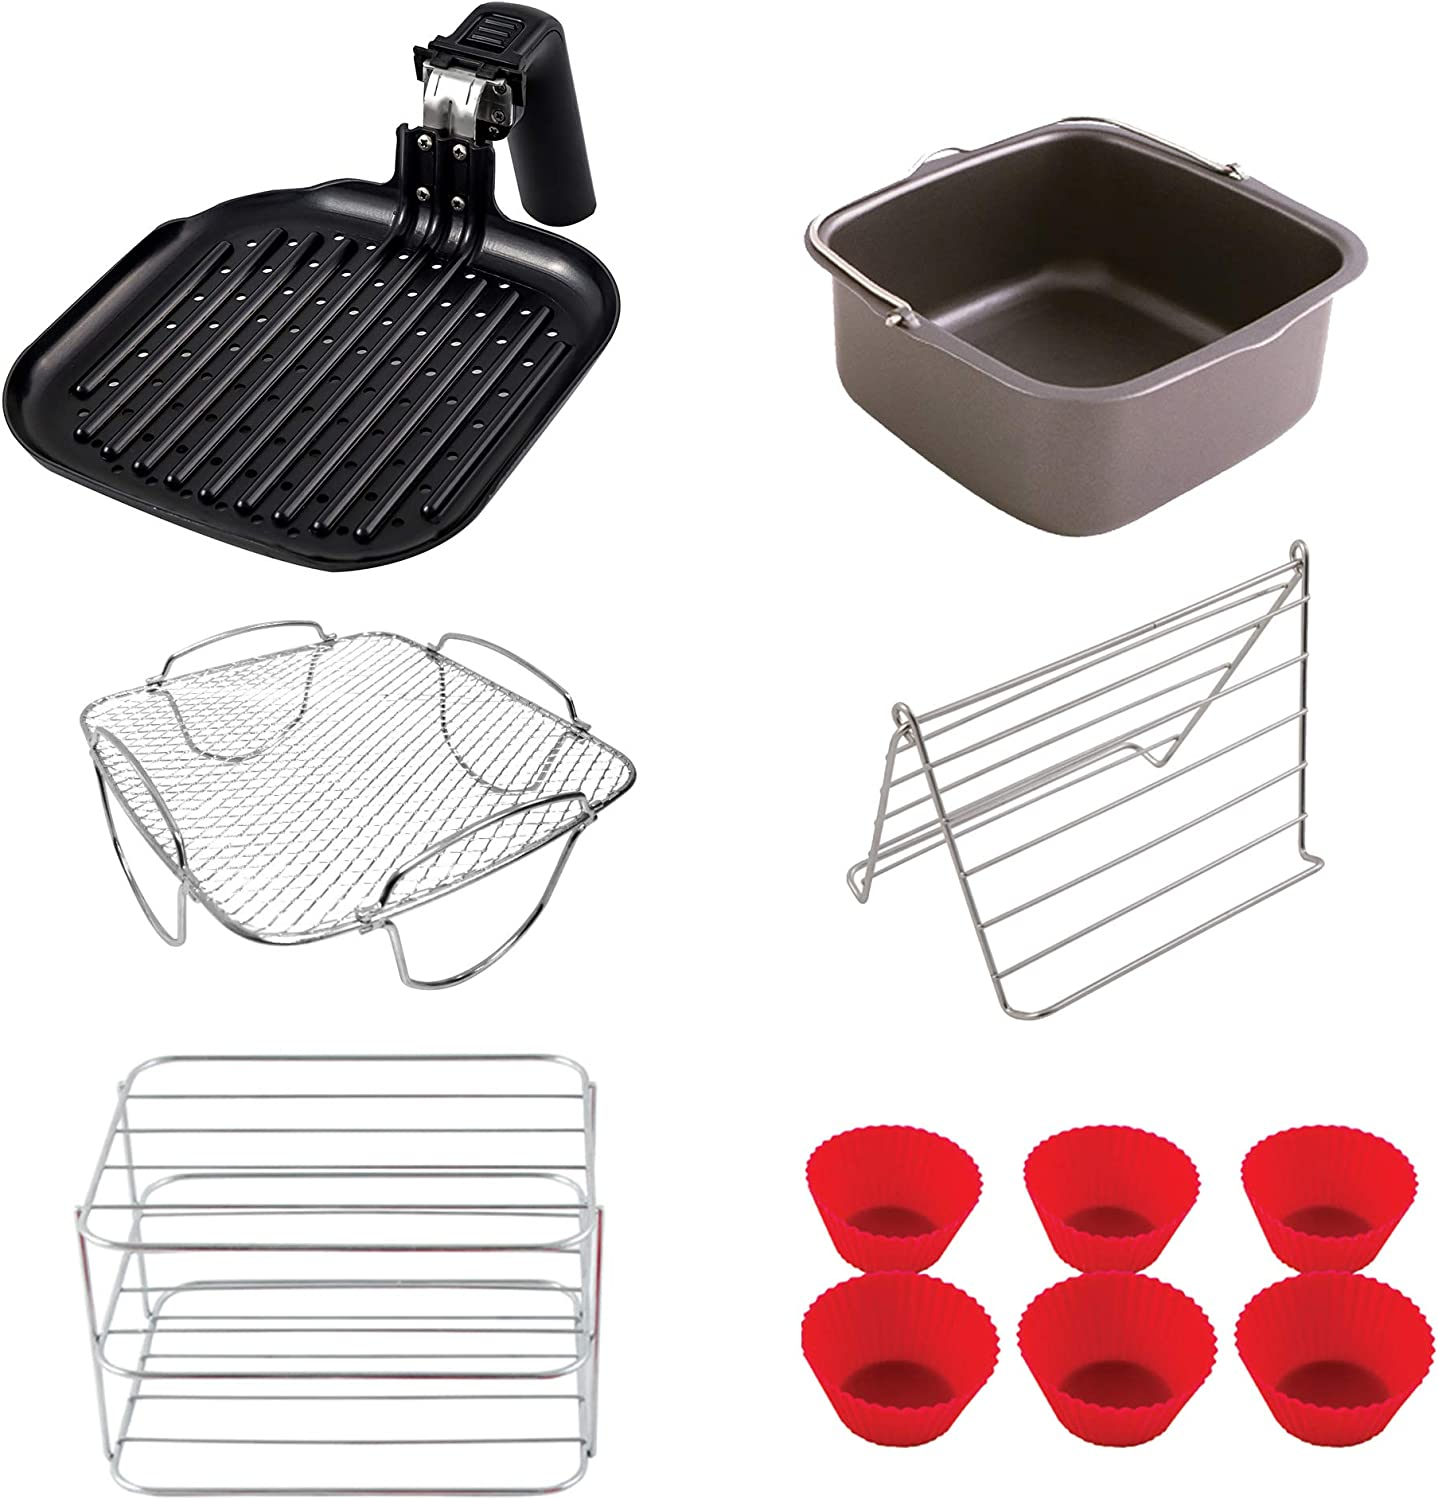 NuWave 6 QT Air Fryer Accessories (Ultimate Kit)